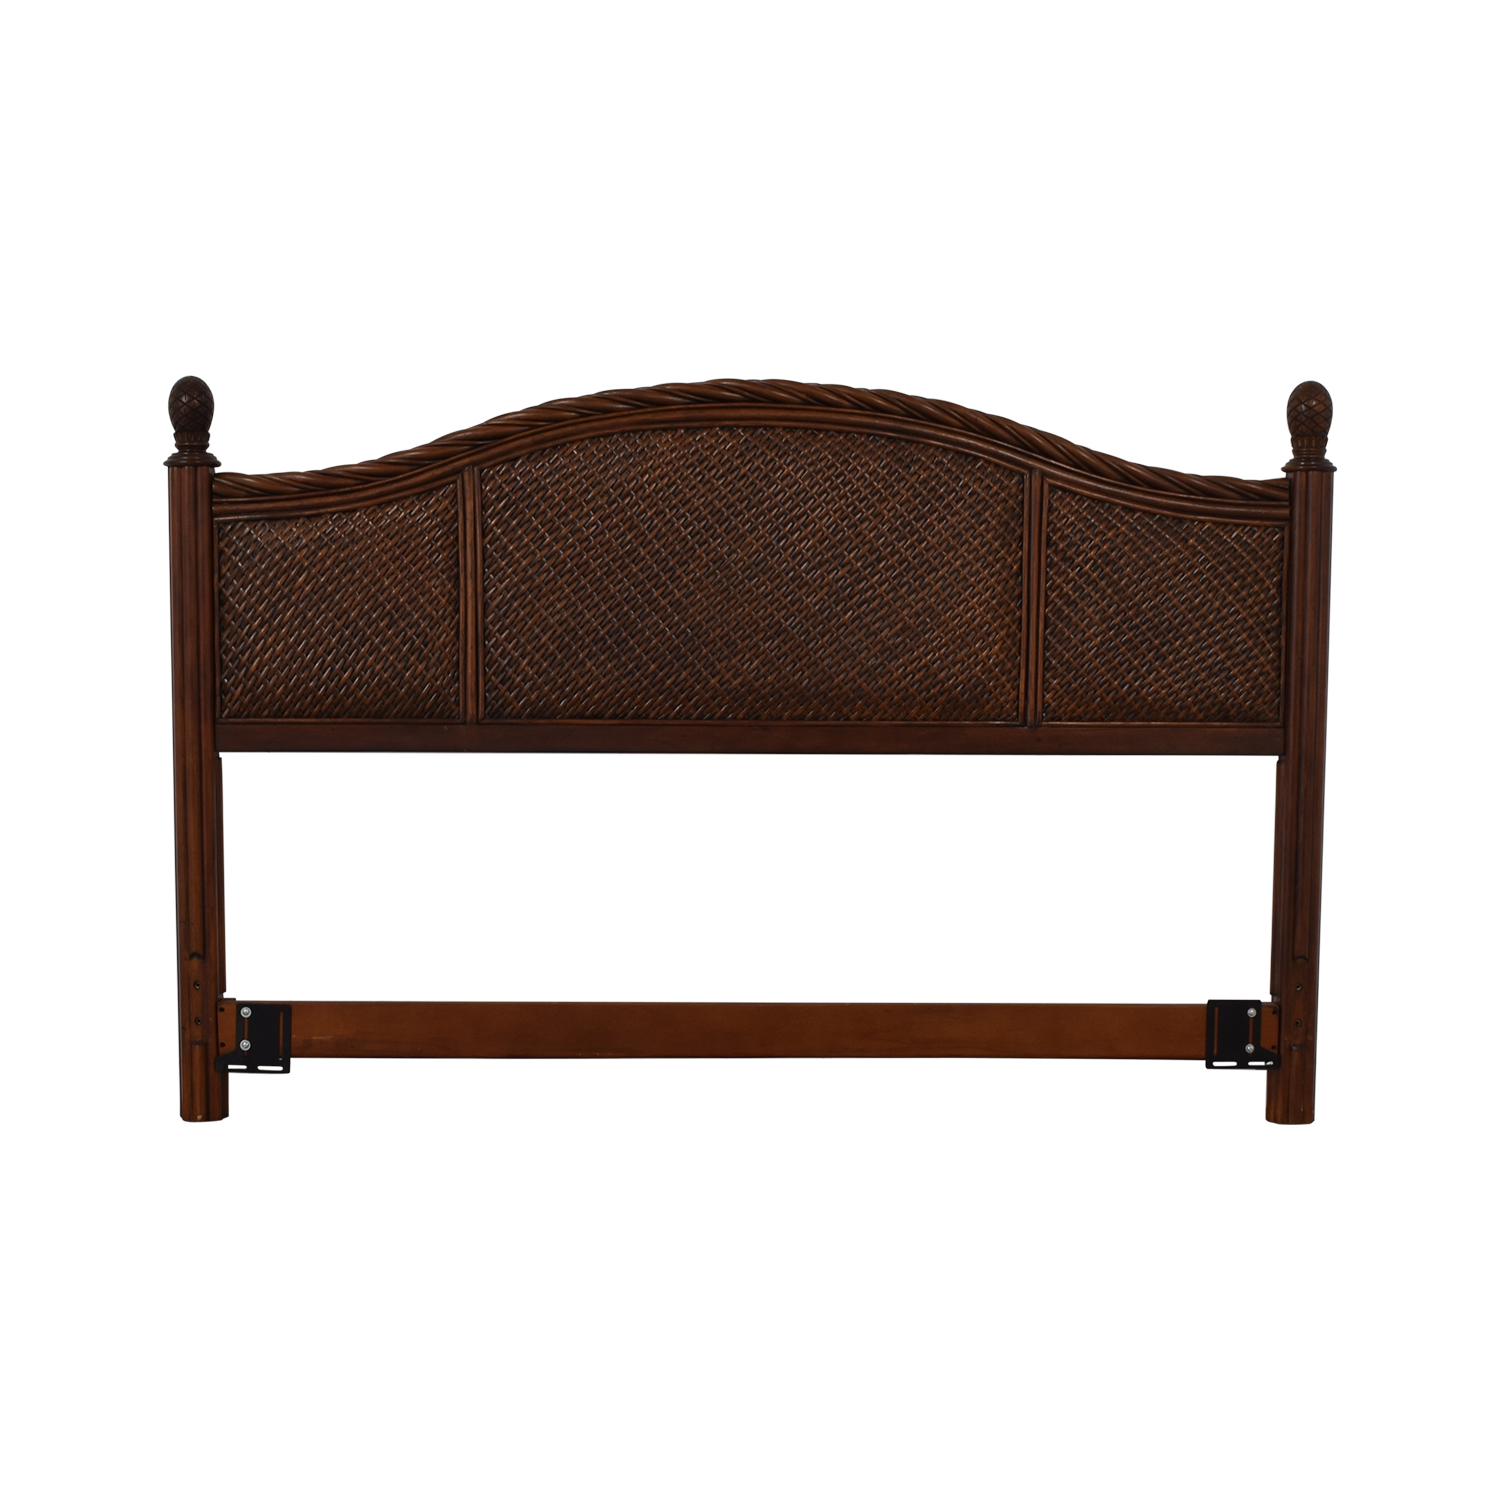 Home Styles Home Styles Marco Island King Headboard brown